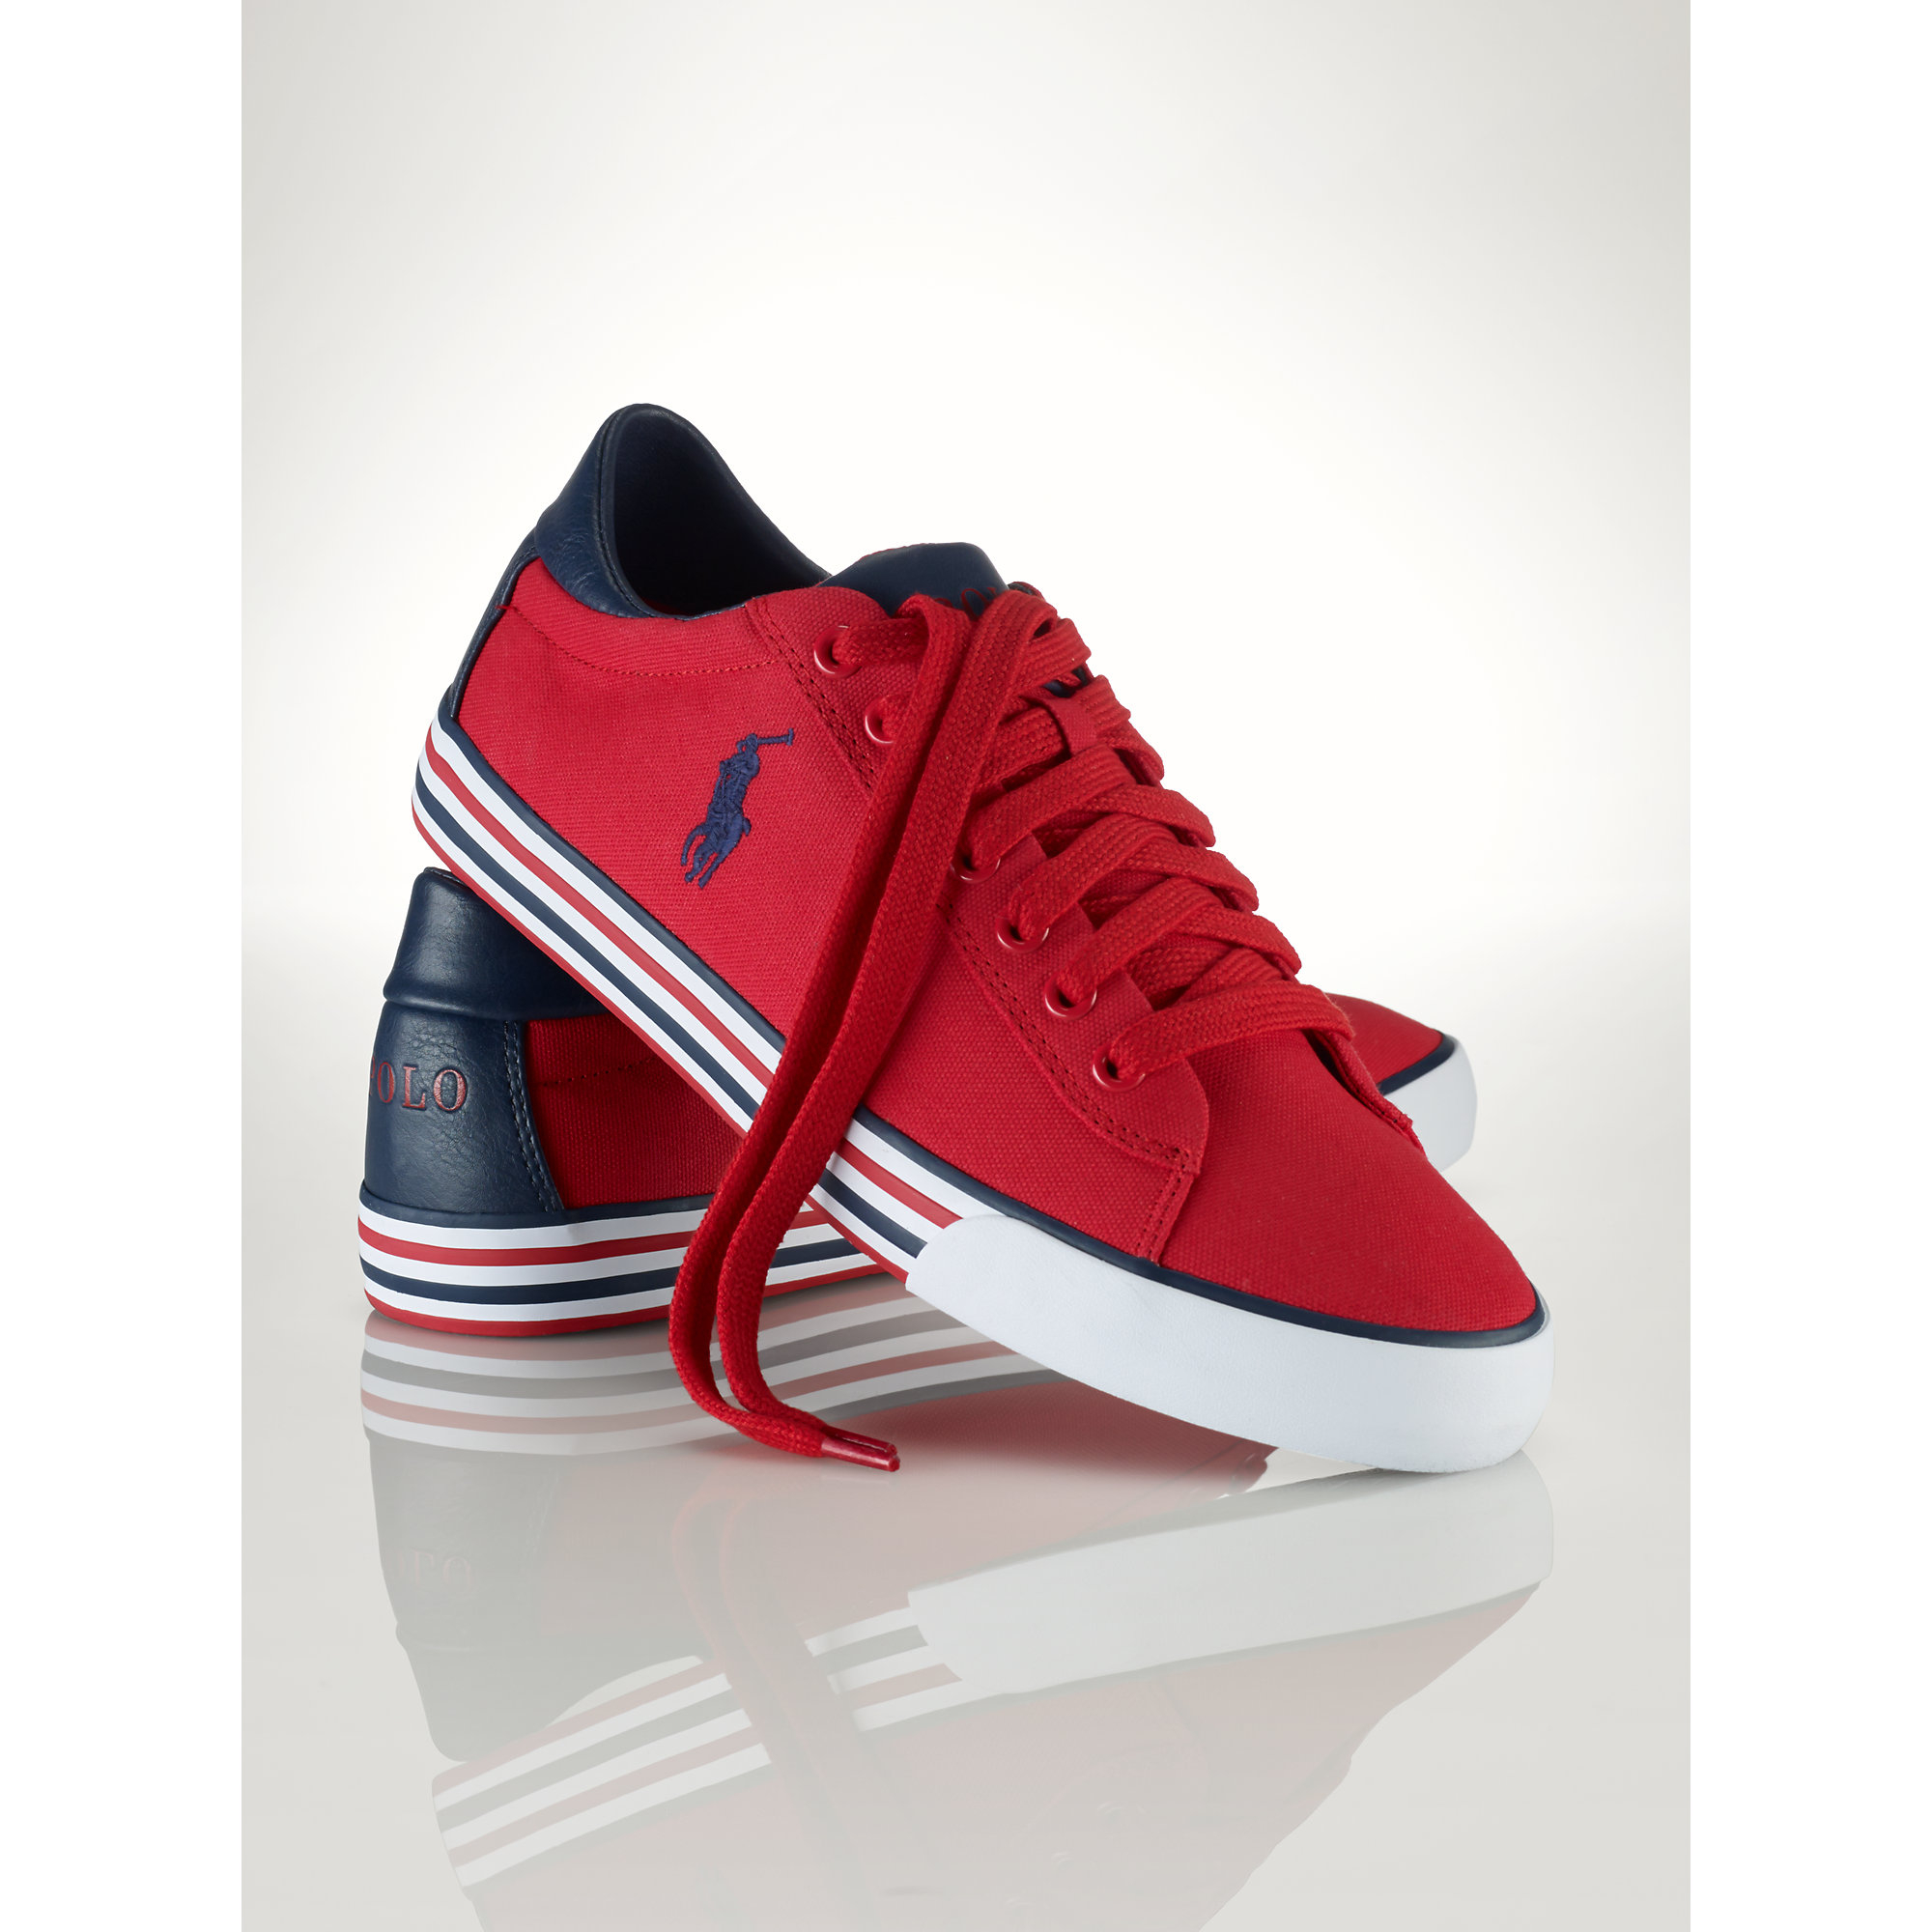 lyst polo ralph lauren canvas harvey sneaker in red for men. Black Bedroom Furniture Sets. Home Design Ideas